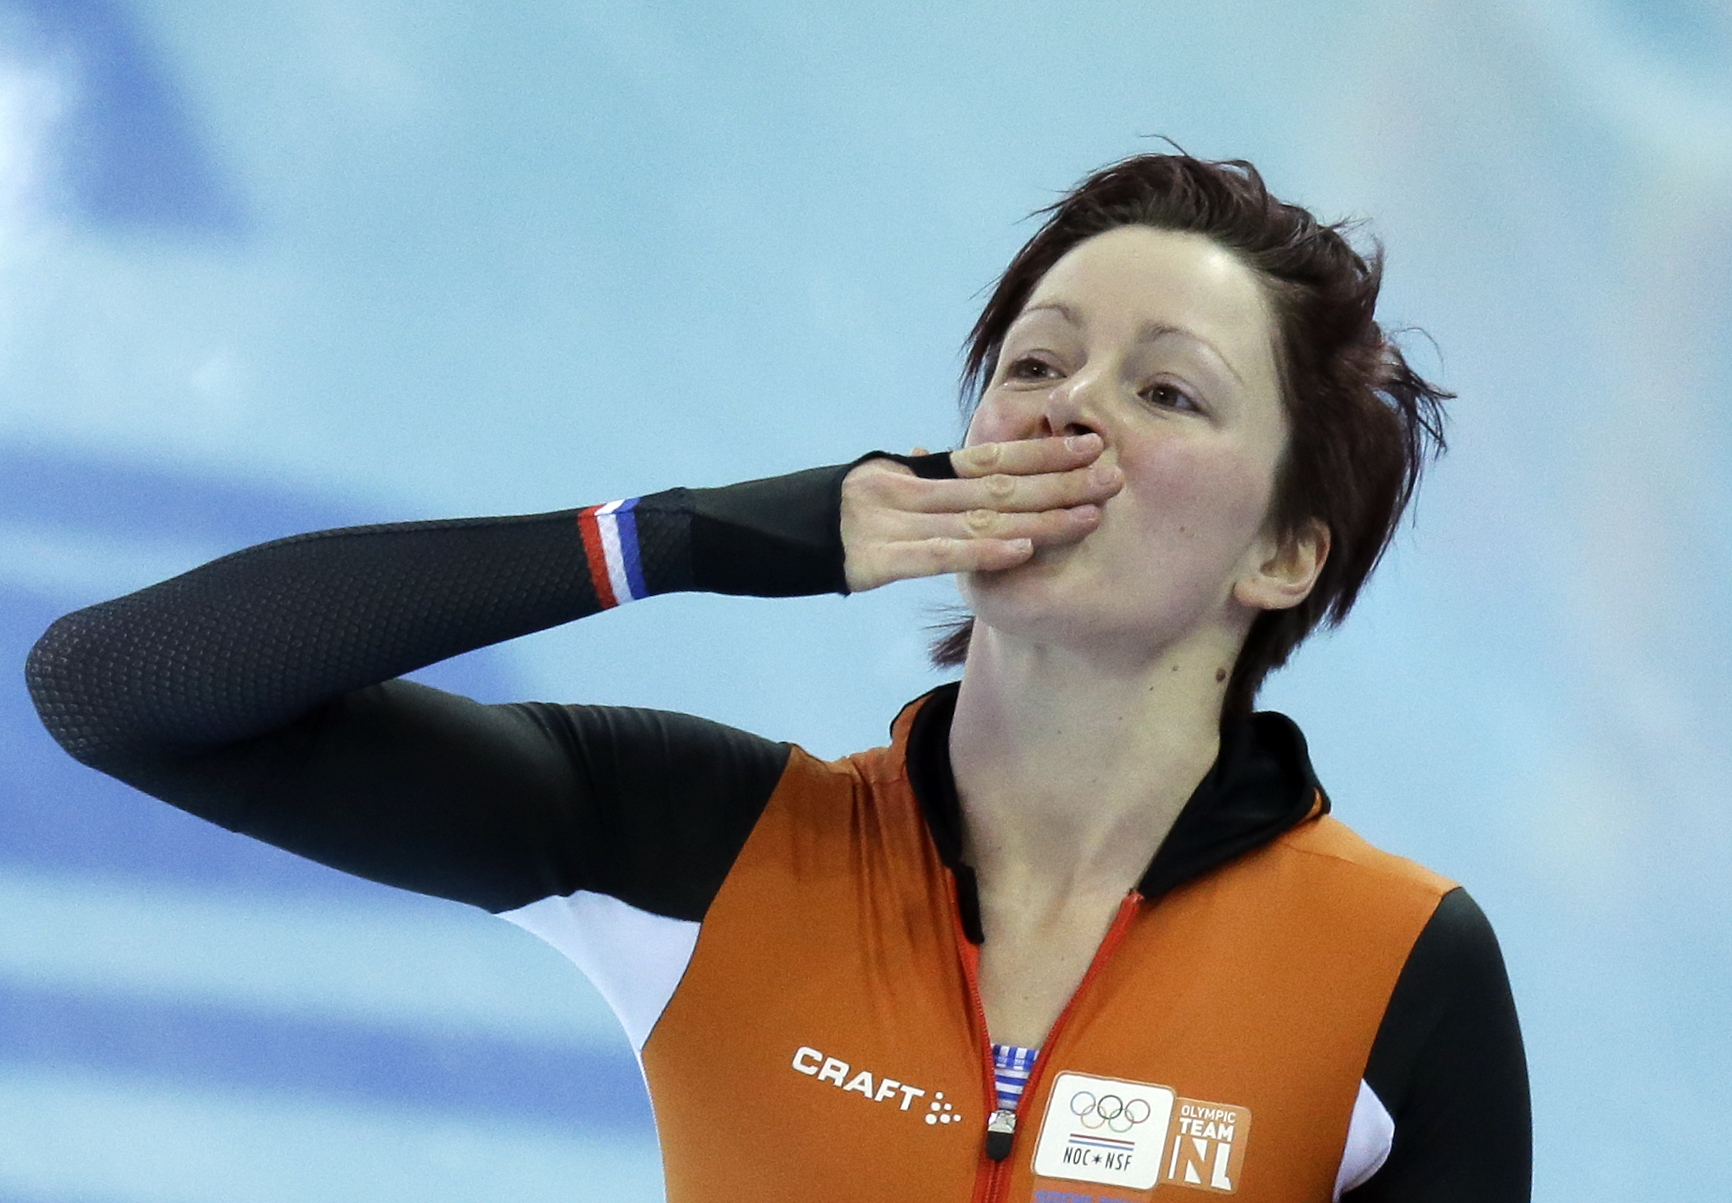 Jorien ter Mors of the Netherlands acknowledges the crowd after setting a new Olympic record in the women's 1,500-meter race at the Adler Arena Skating Center during the 2014 Winter Olympics in Sochi, Russia, Sunday, Feb. 16, 2014. (AP Photo/David J. Phillip )